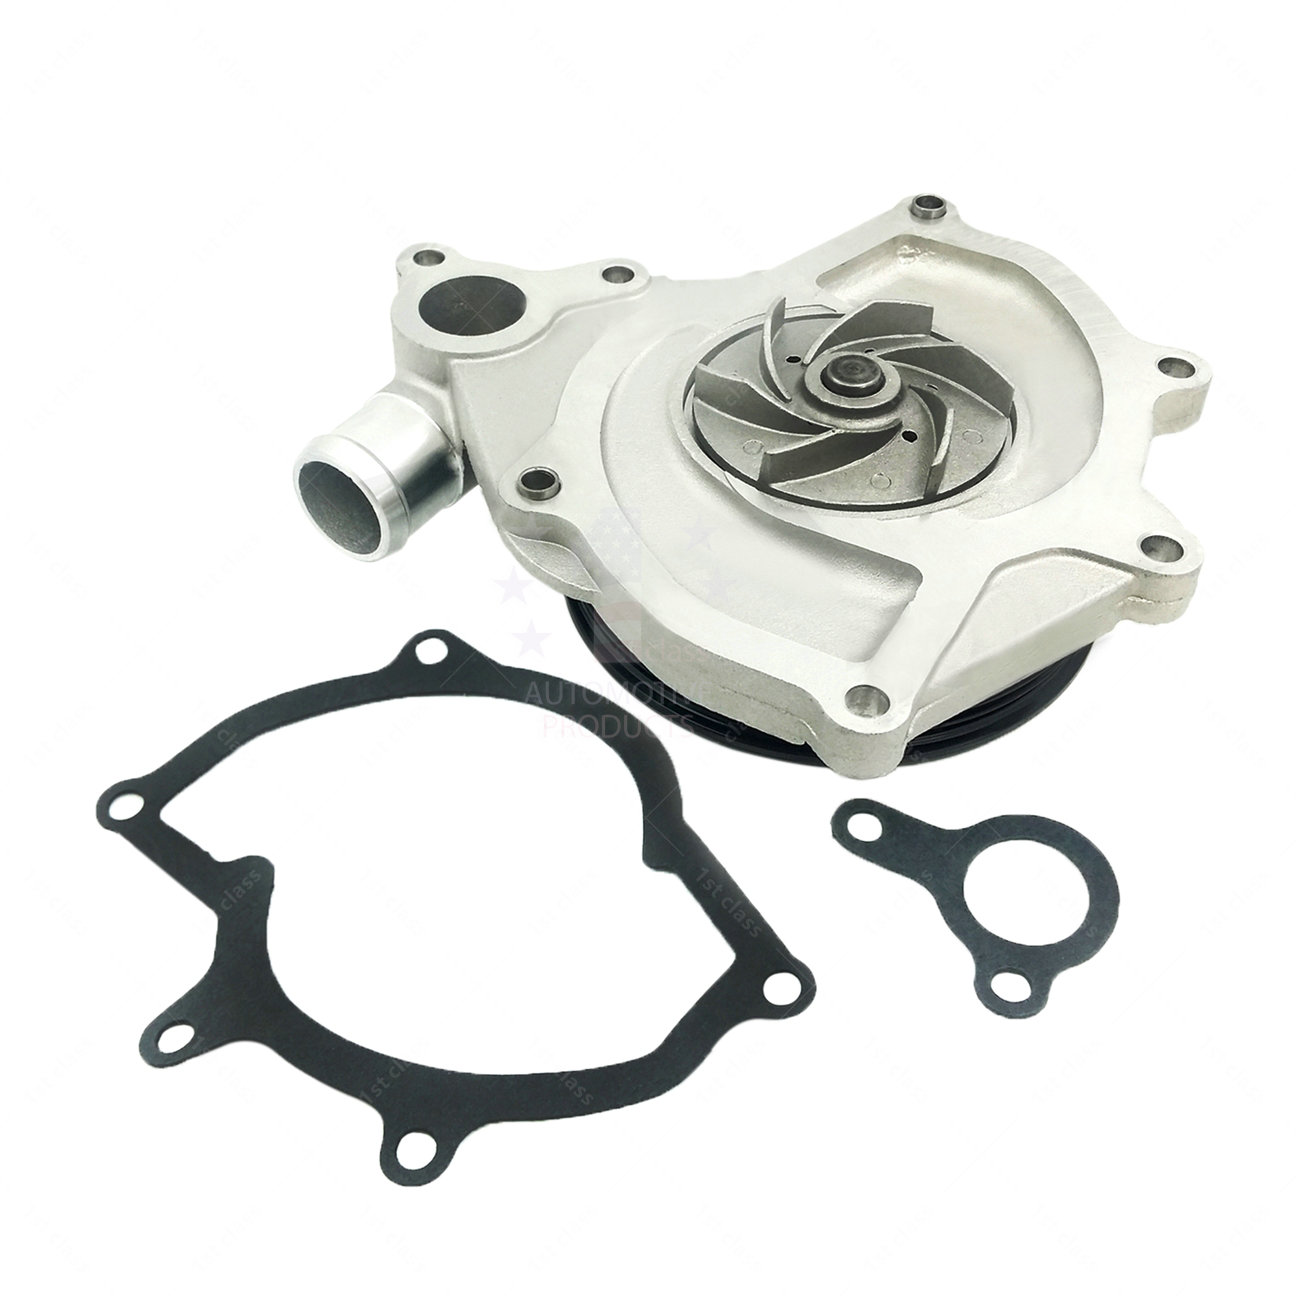 innova3.com Automotive Water Pumps Engine Water Pump NEW for ...